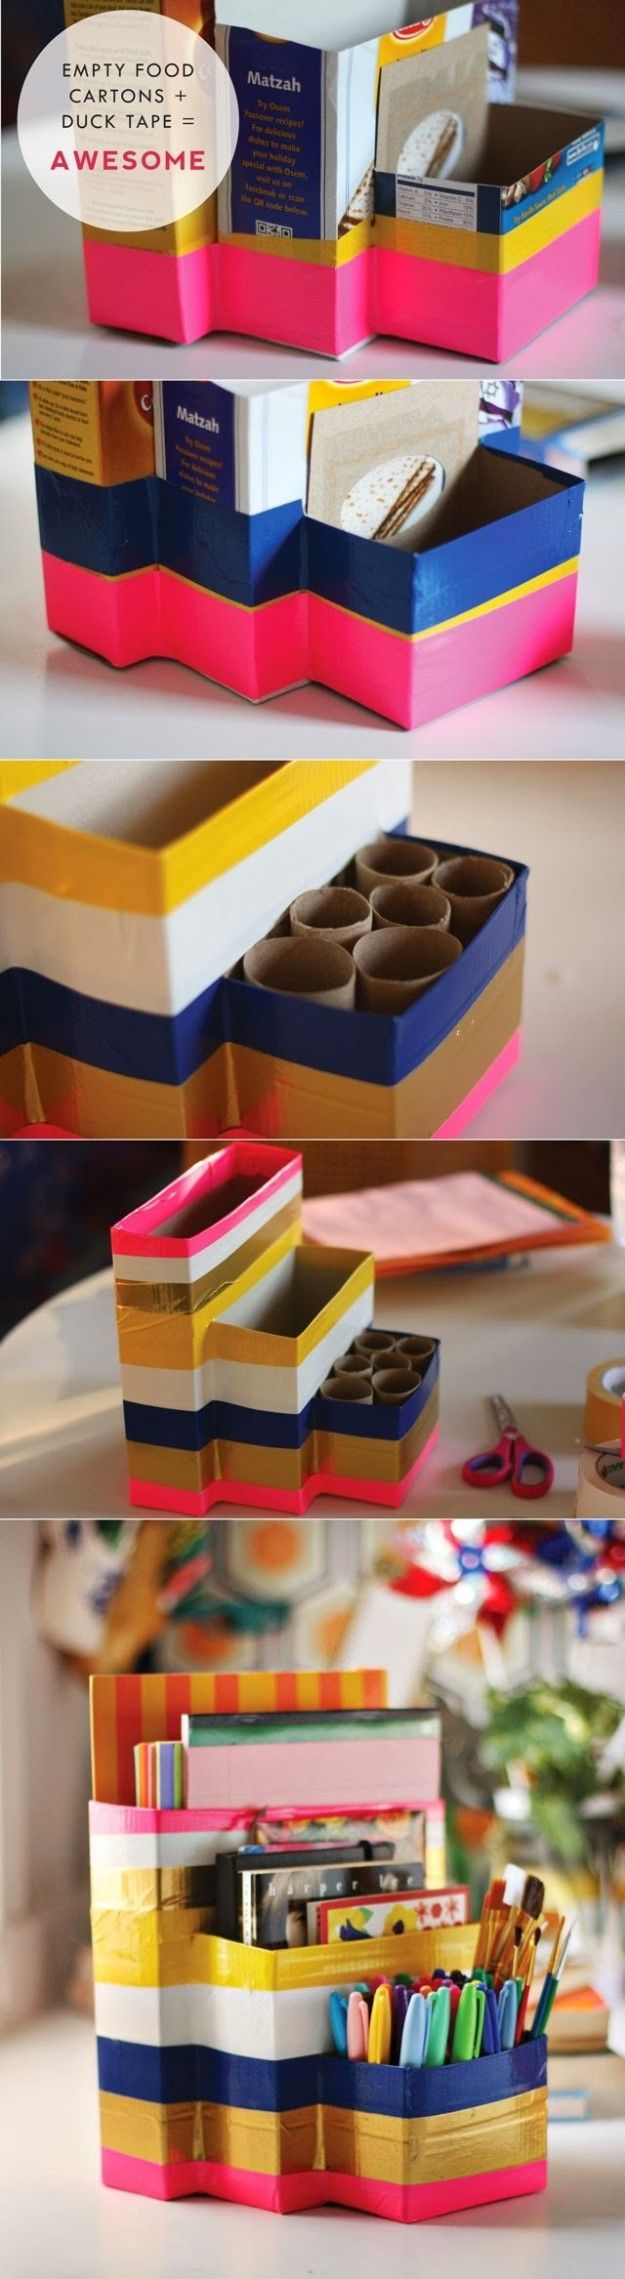 This homework caddy you can DIY out of empty cartons you find around the house.